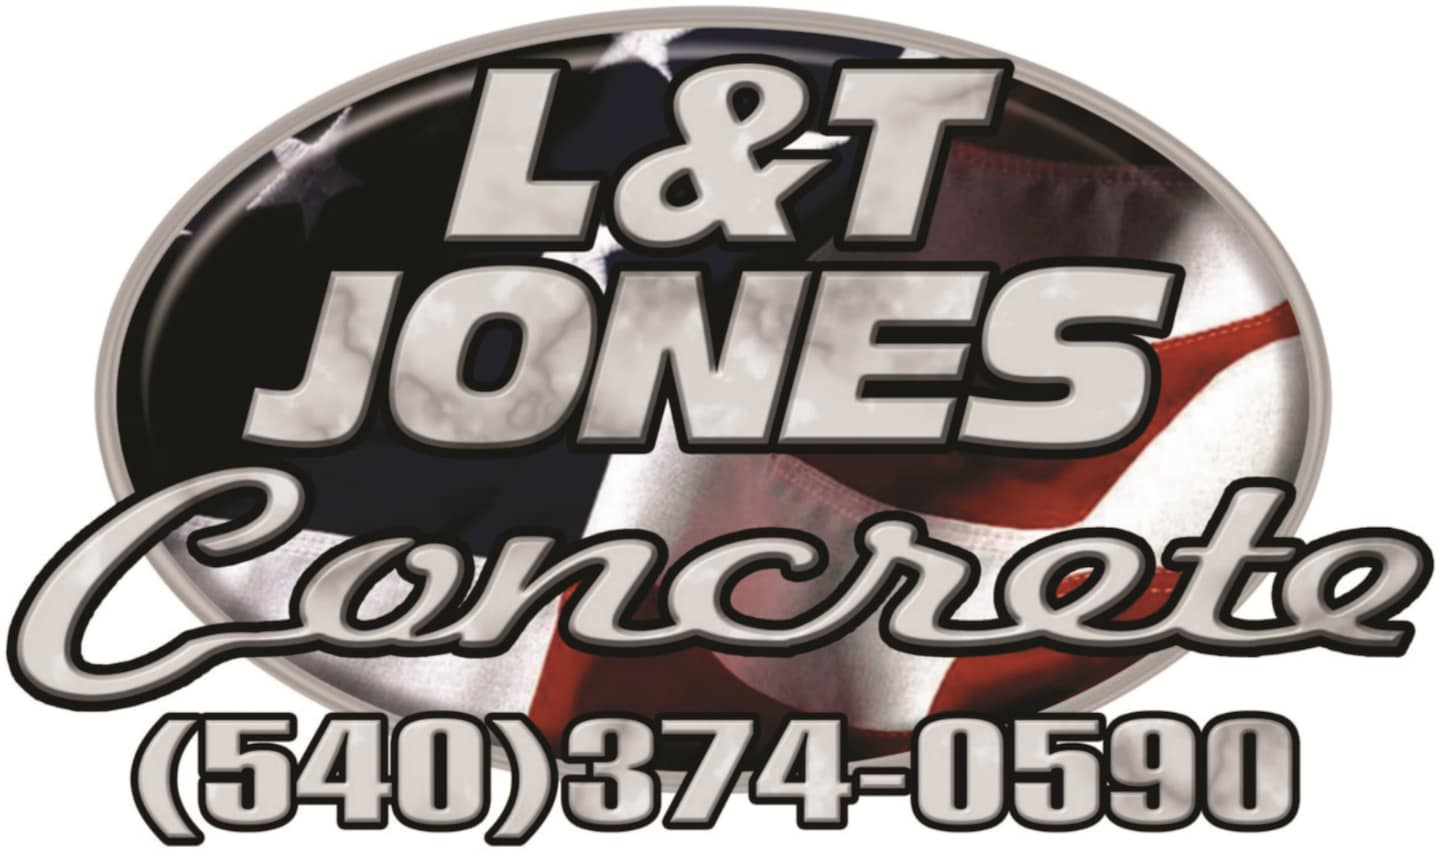 L & T Jones Concrete Inc